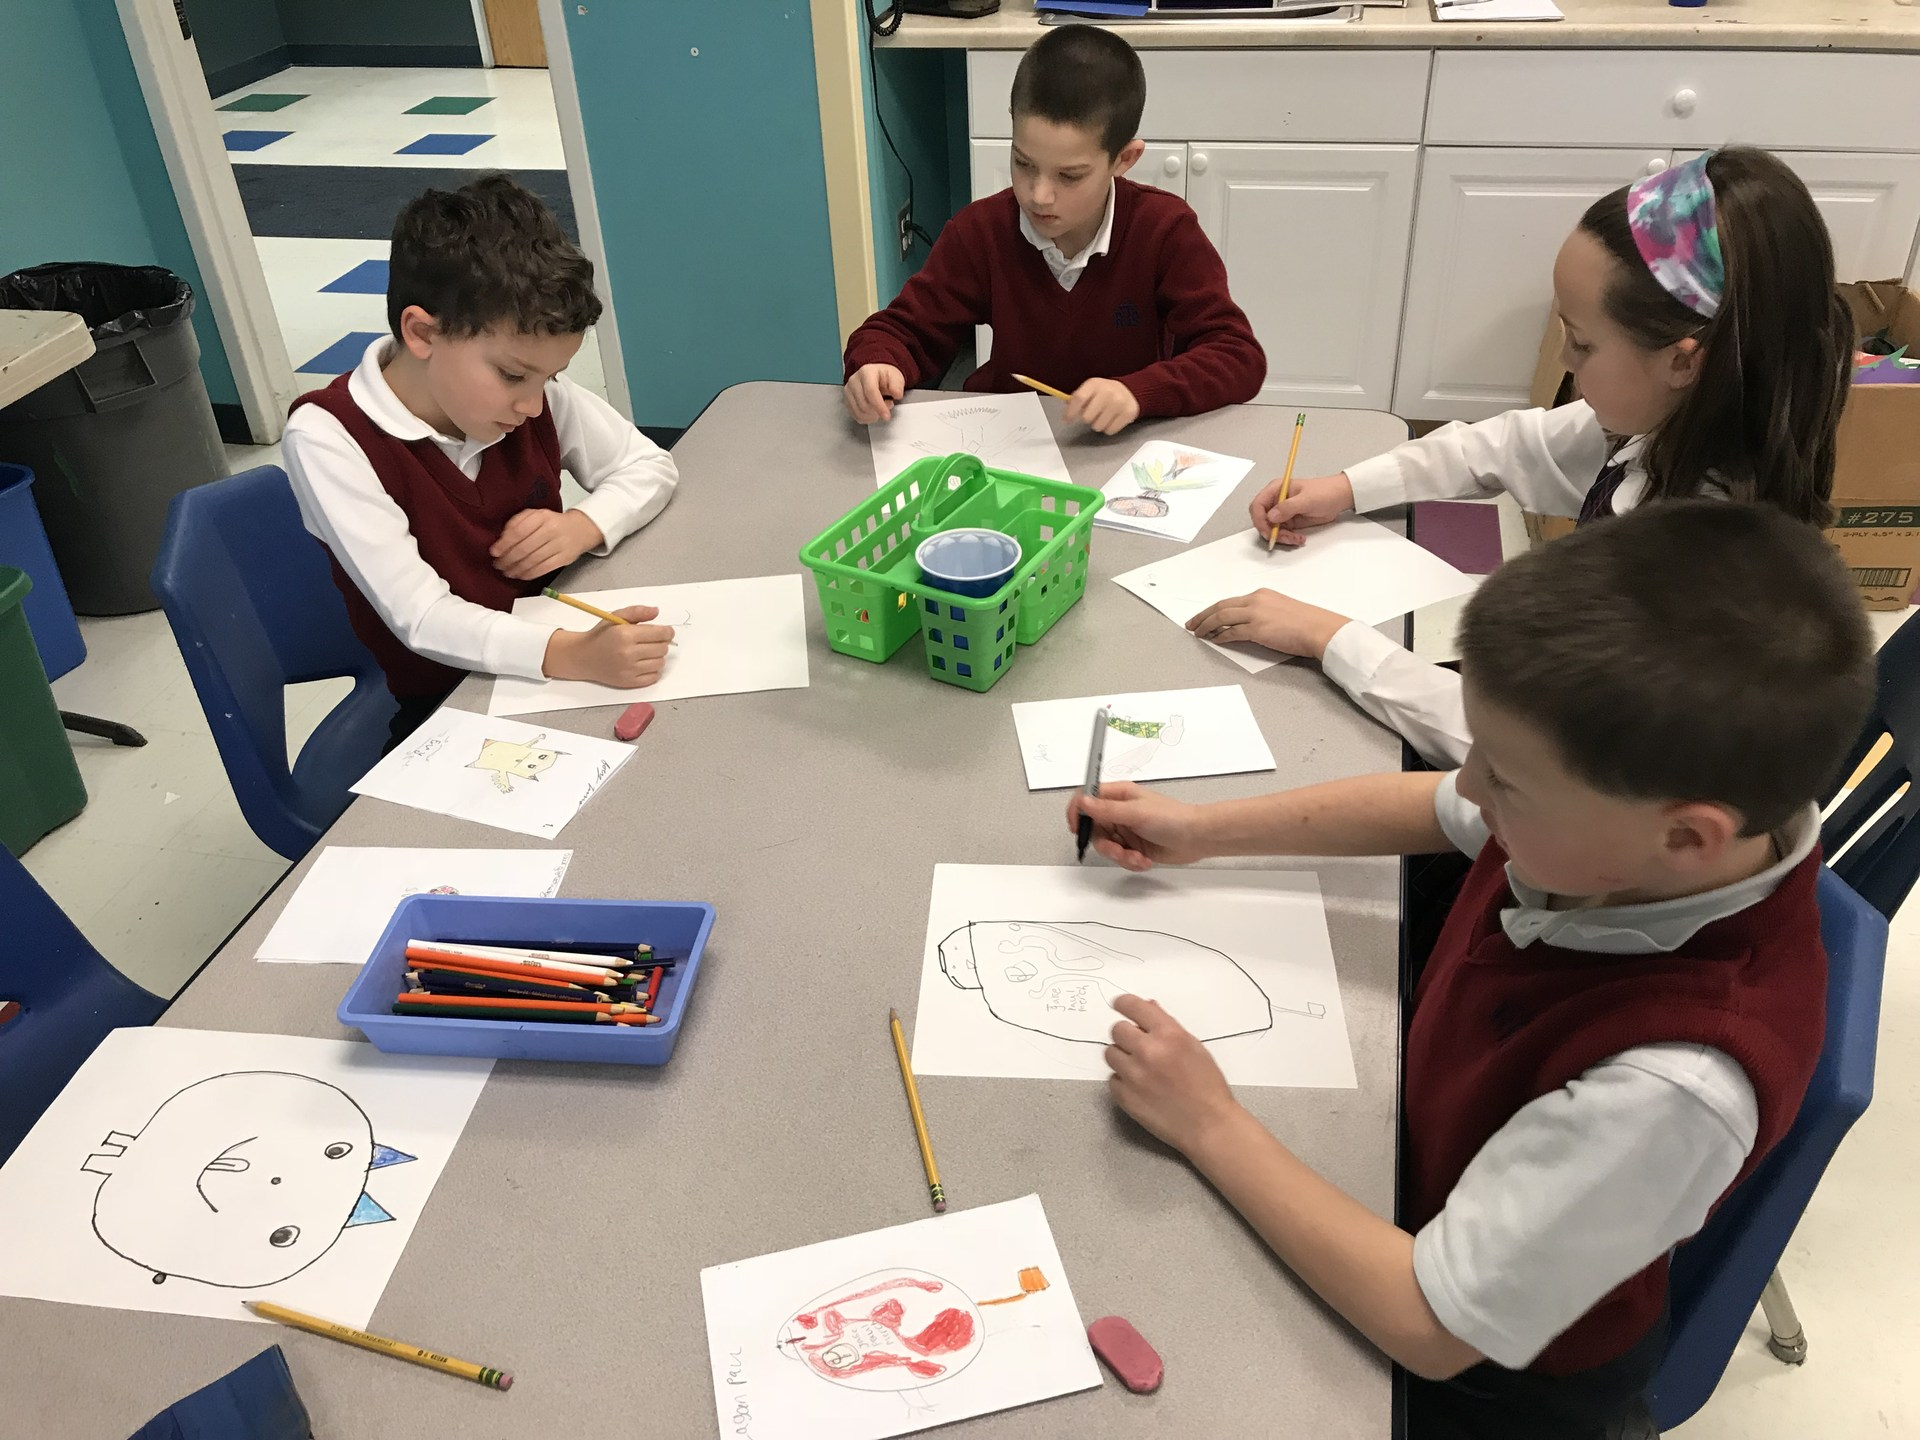 Group of students drawing